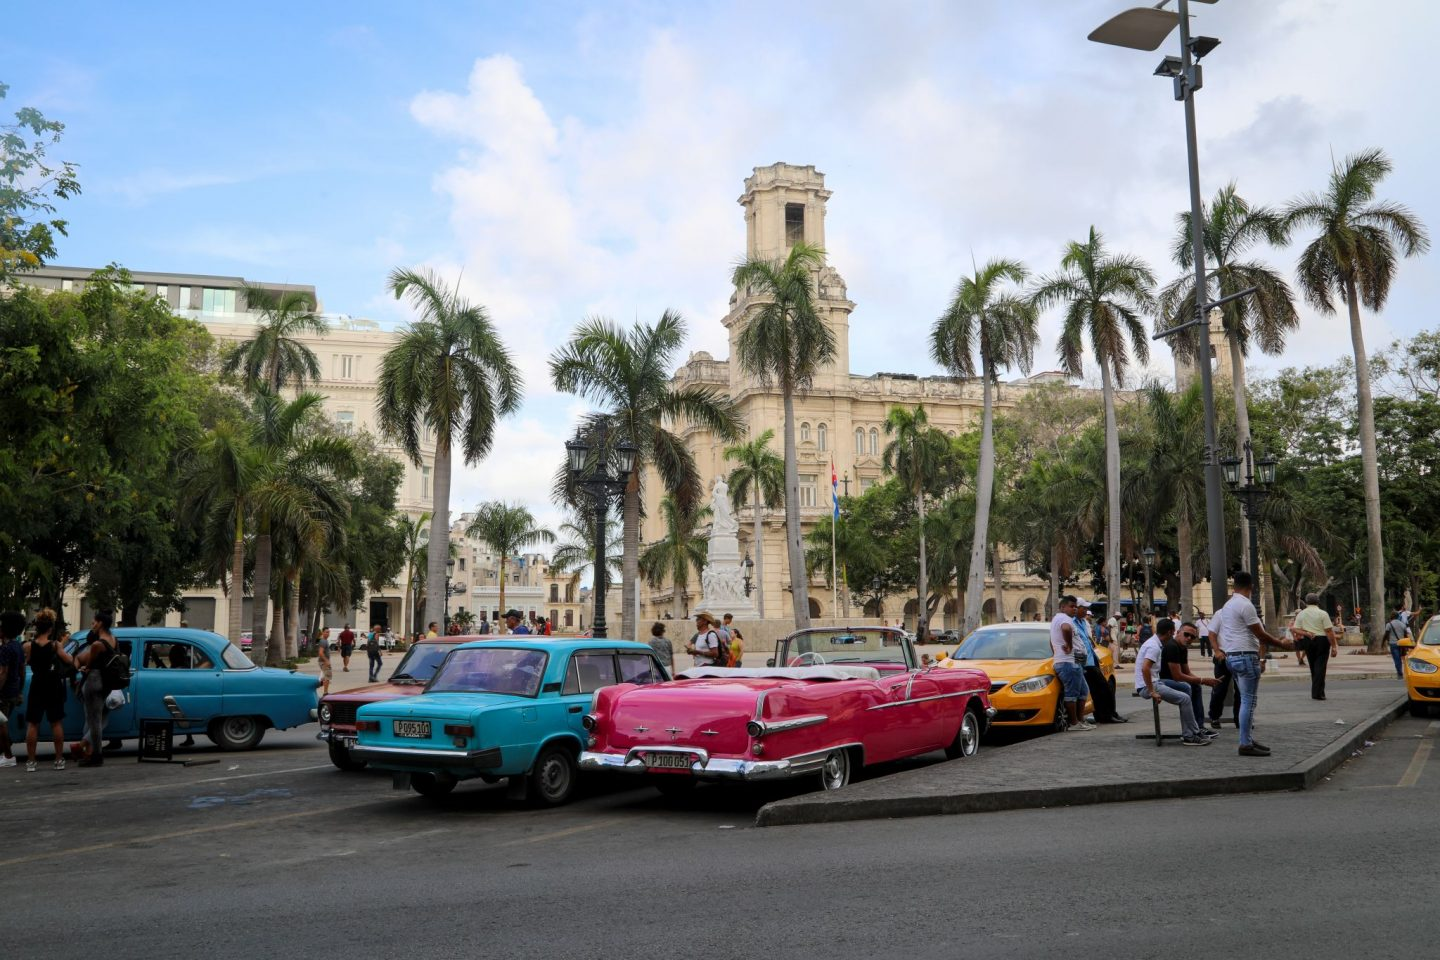 2017 Travel To Cuba Cuba Guide Everything You Need To Know About Planning A